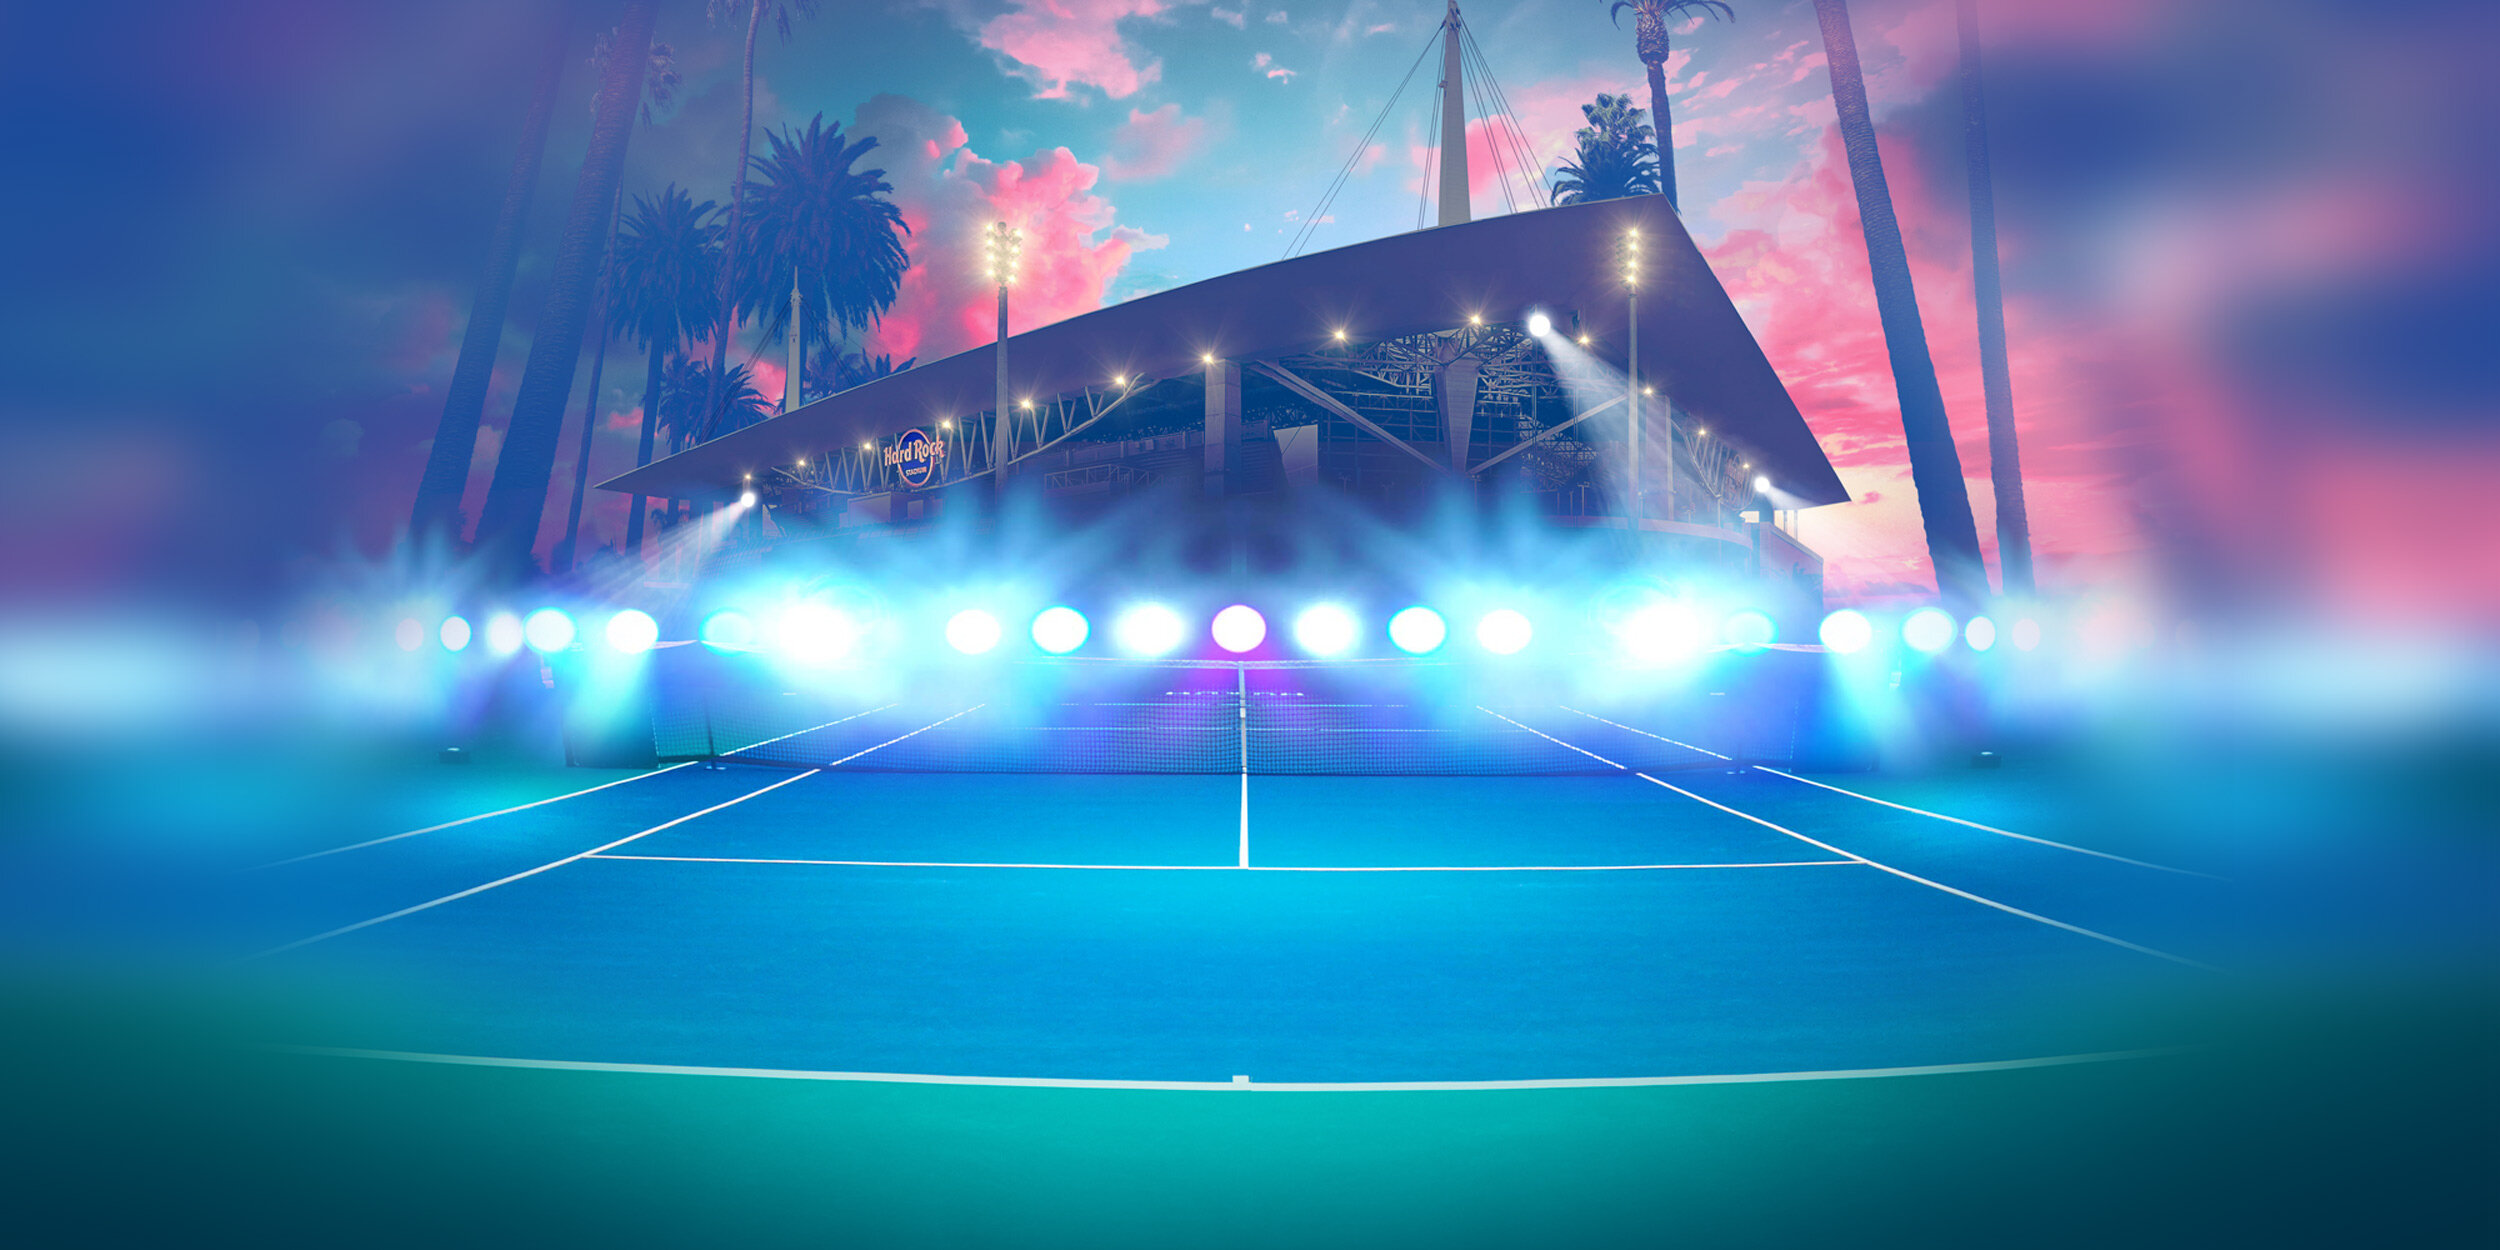 Trusted at the Miami Open since 1985